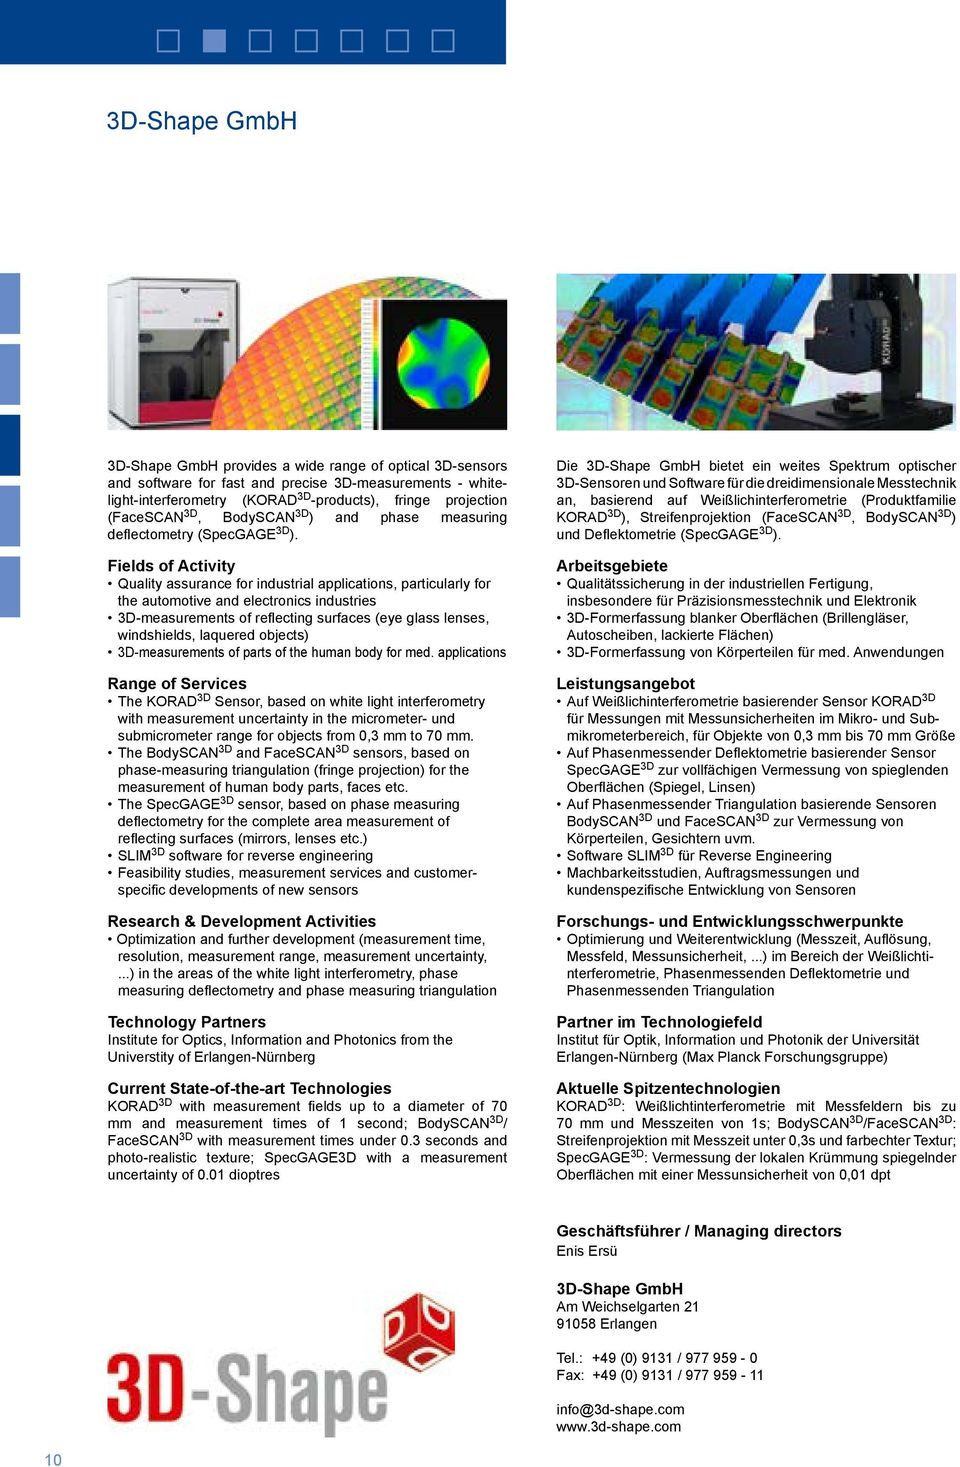 Quality assurance for industrial applications, particularly for the automotive and electronics industries 3D-measurements of reflecting surfaces (eye glass lenses, windshields, laquered objects)